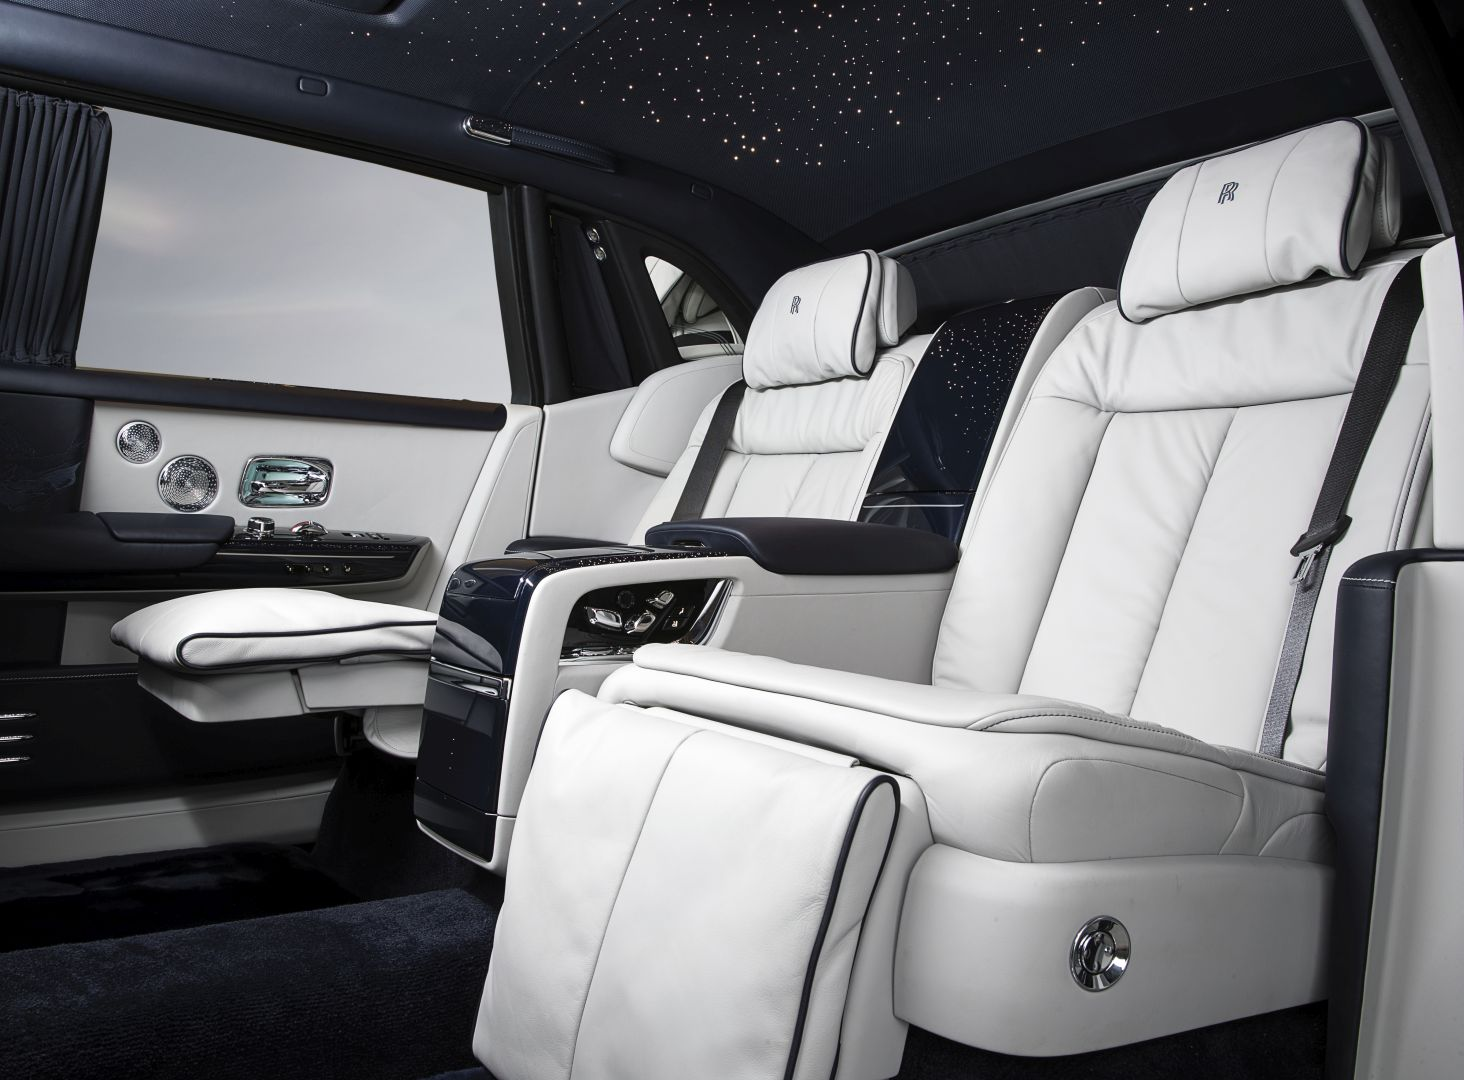 Phantom Serenity Rolls Royce To Bring Three Special Phantom Models To Geneva